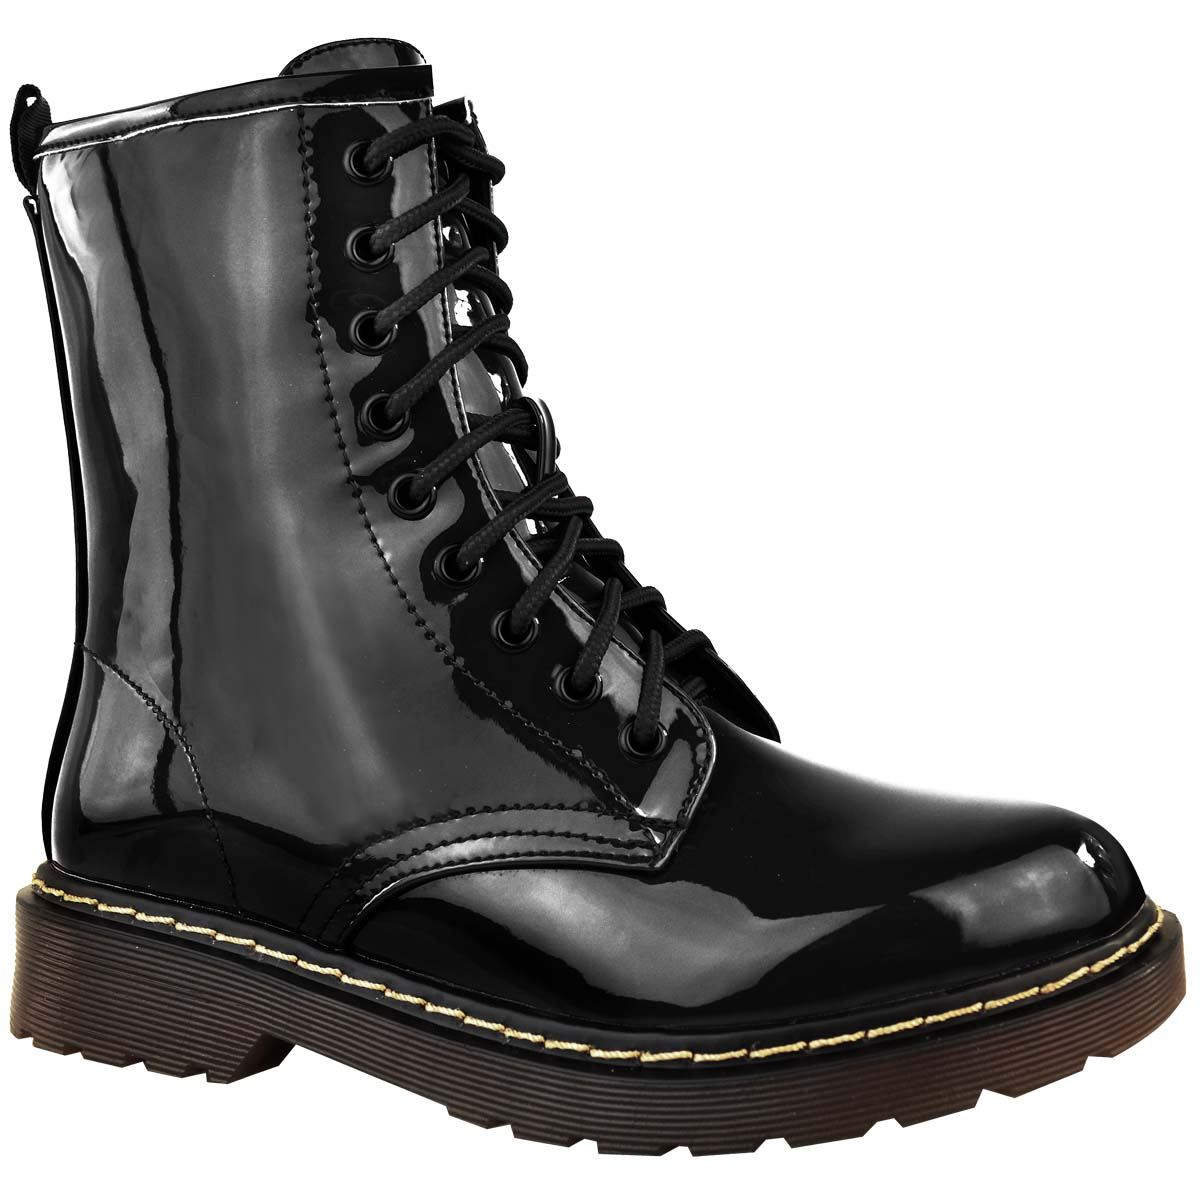 Womens-Doc-Ankle-Boots-Black-Faux-Leather-Patent-Lace-Up-Flat-Work-Army-Air-Goth thumbnail 3